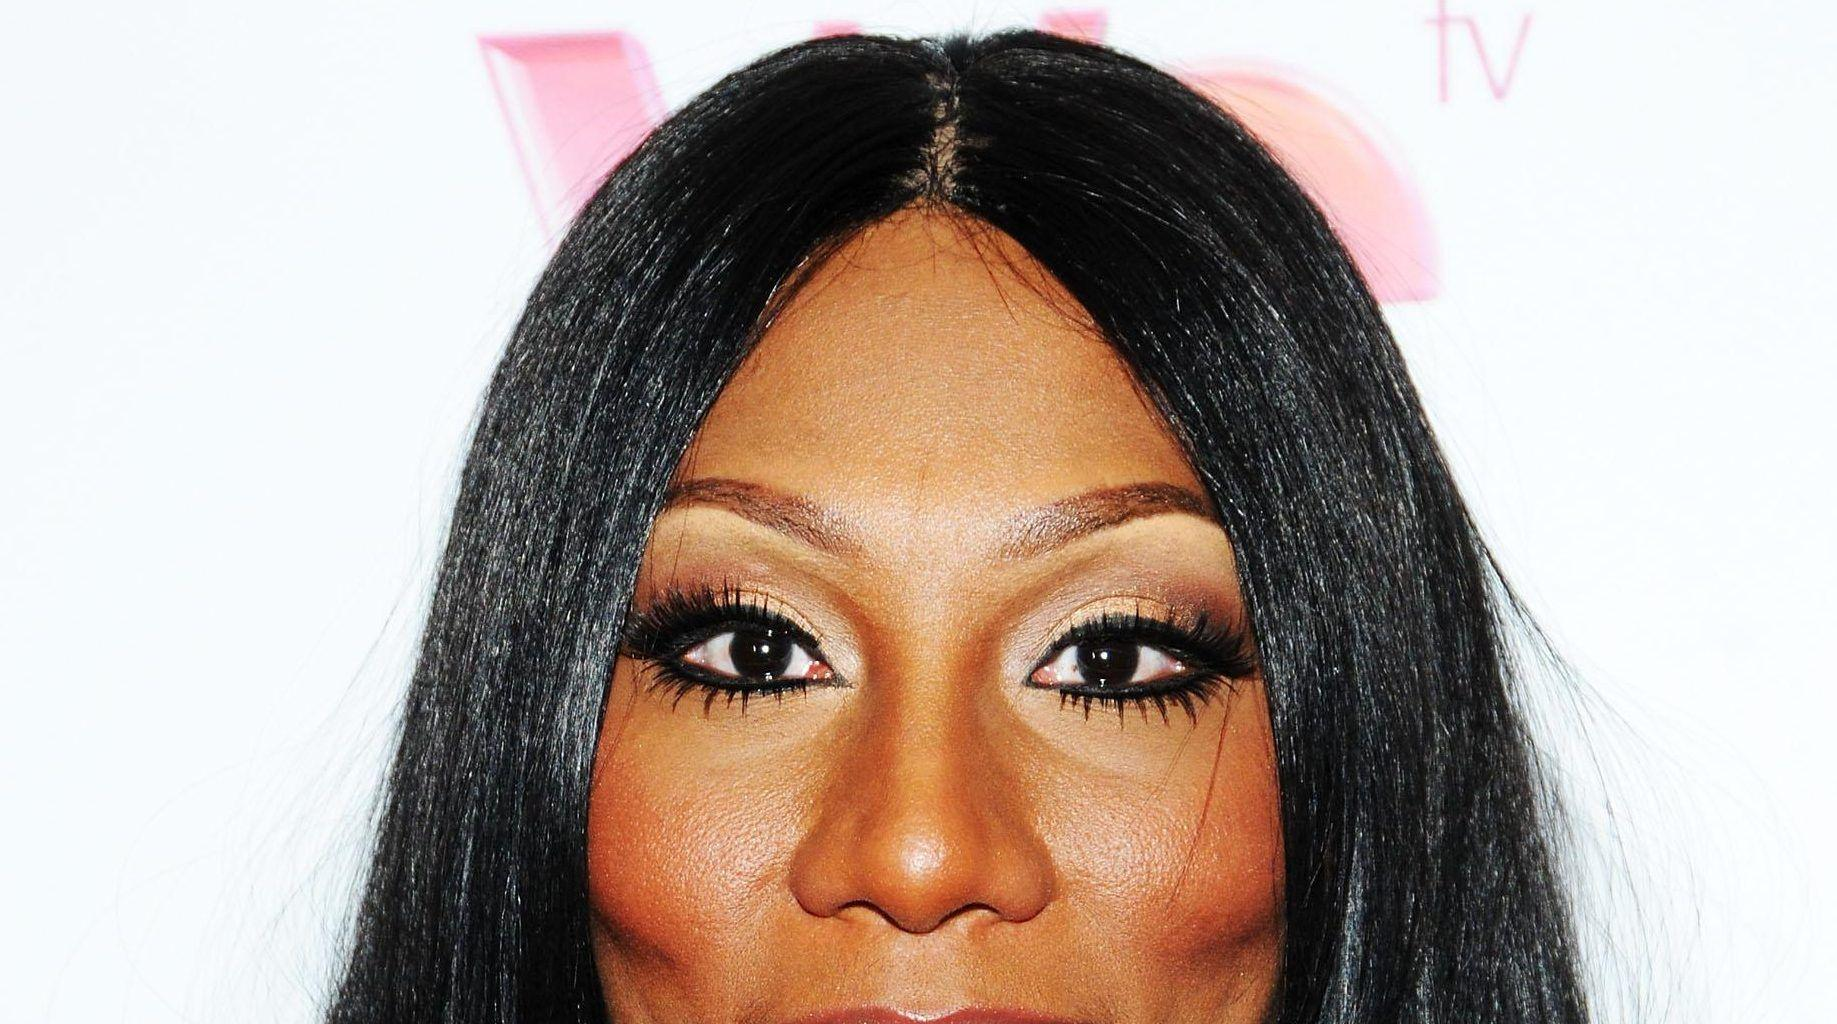 Towanda Braxton Addresses The Situation Between Tamar Braxton And David Adefeso And Says He's 'Gone Too Far' - See The Video